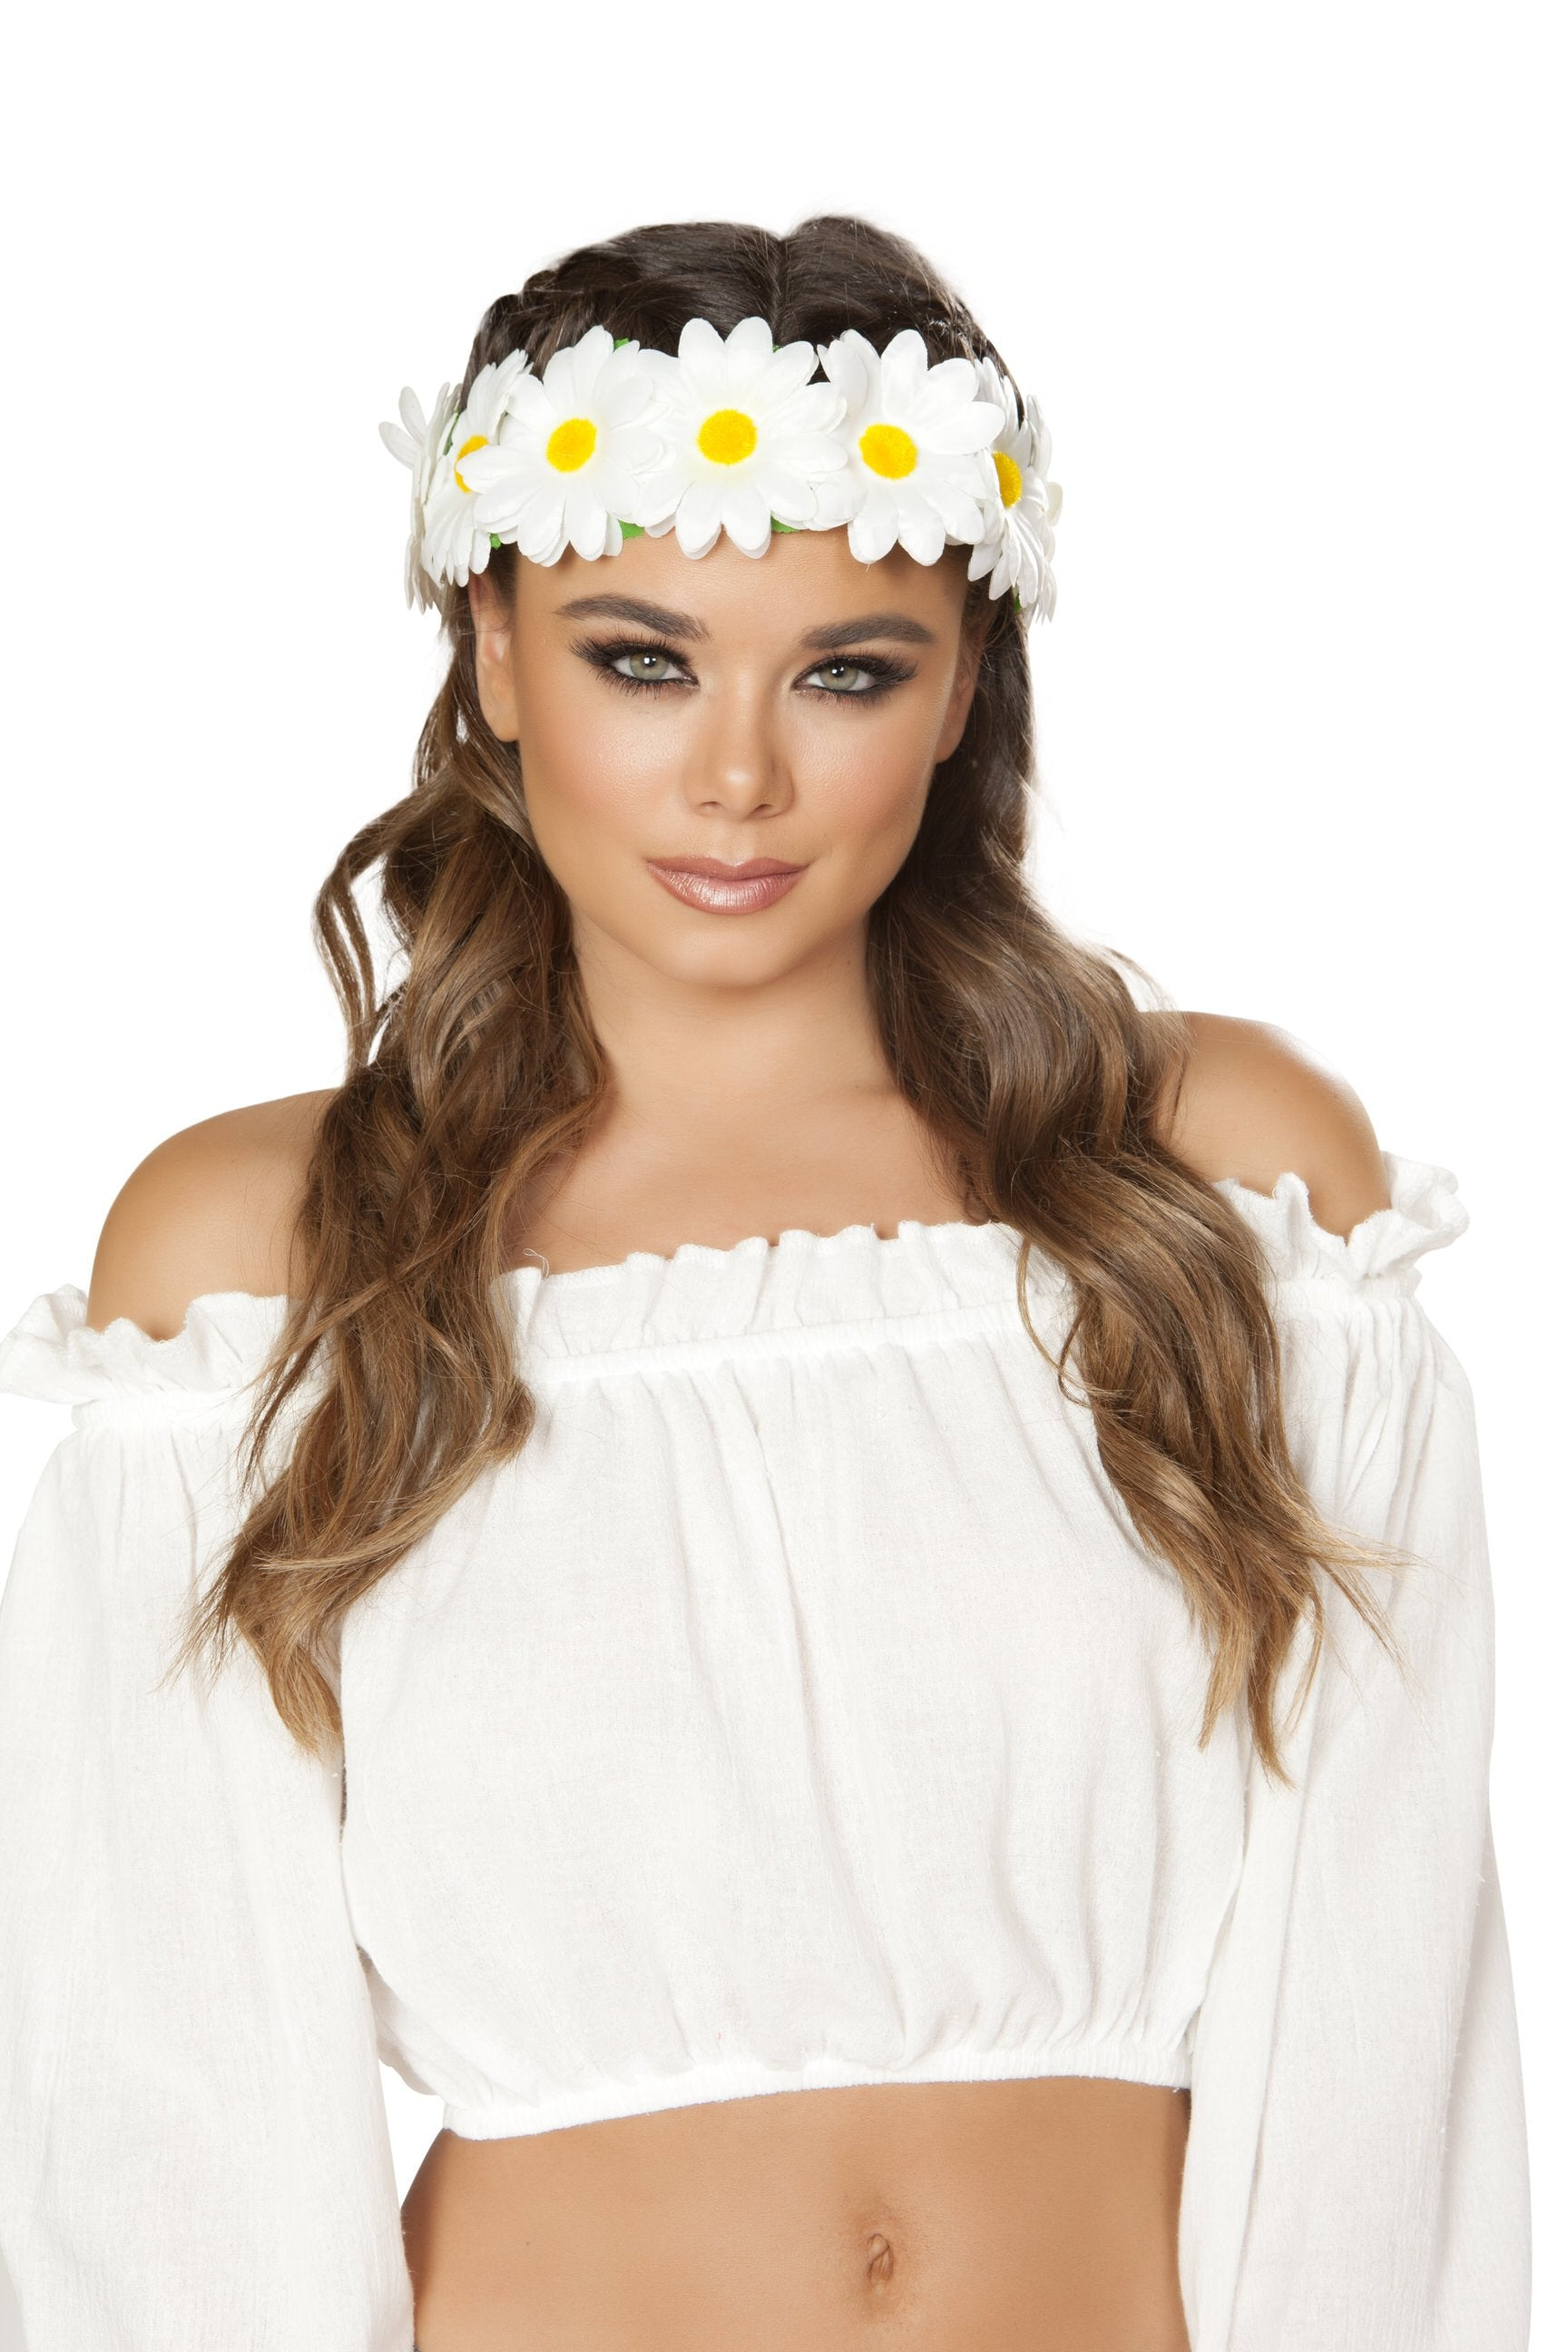 4882 - Light-up Sunflower Headband